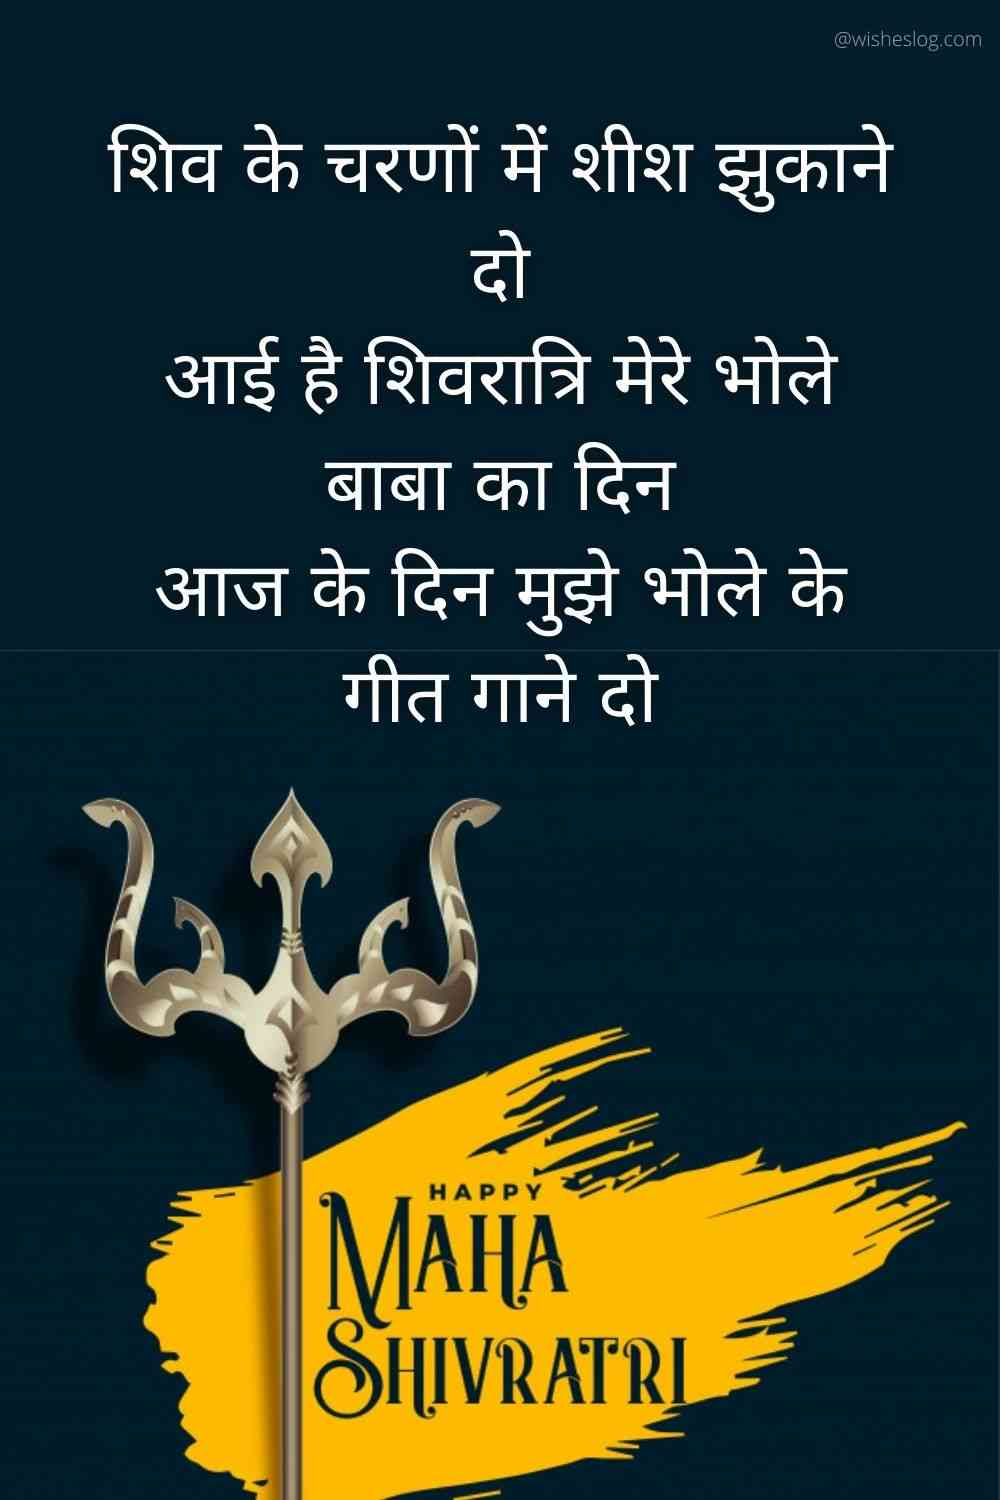 mahashivratri images hindi